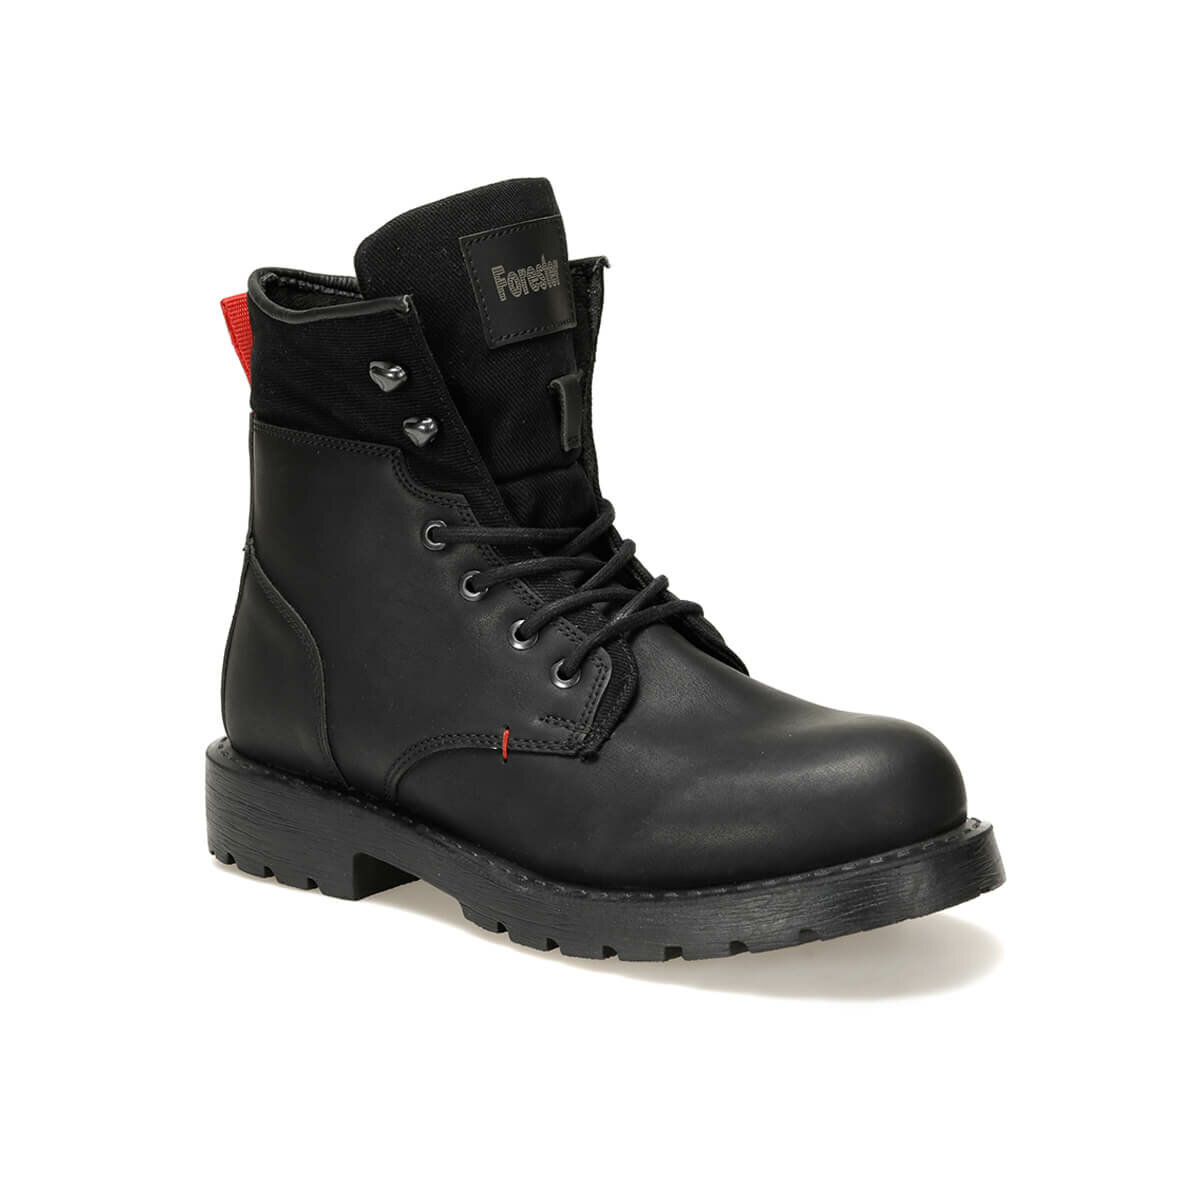 FLO DMS-25-1 C 19 Black Men 'S Postal Forester